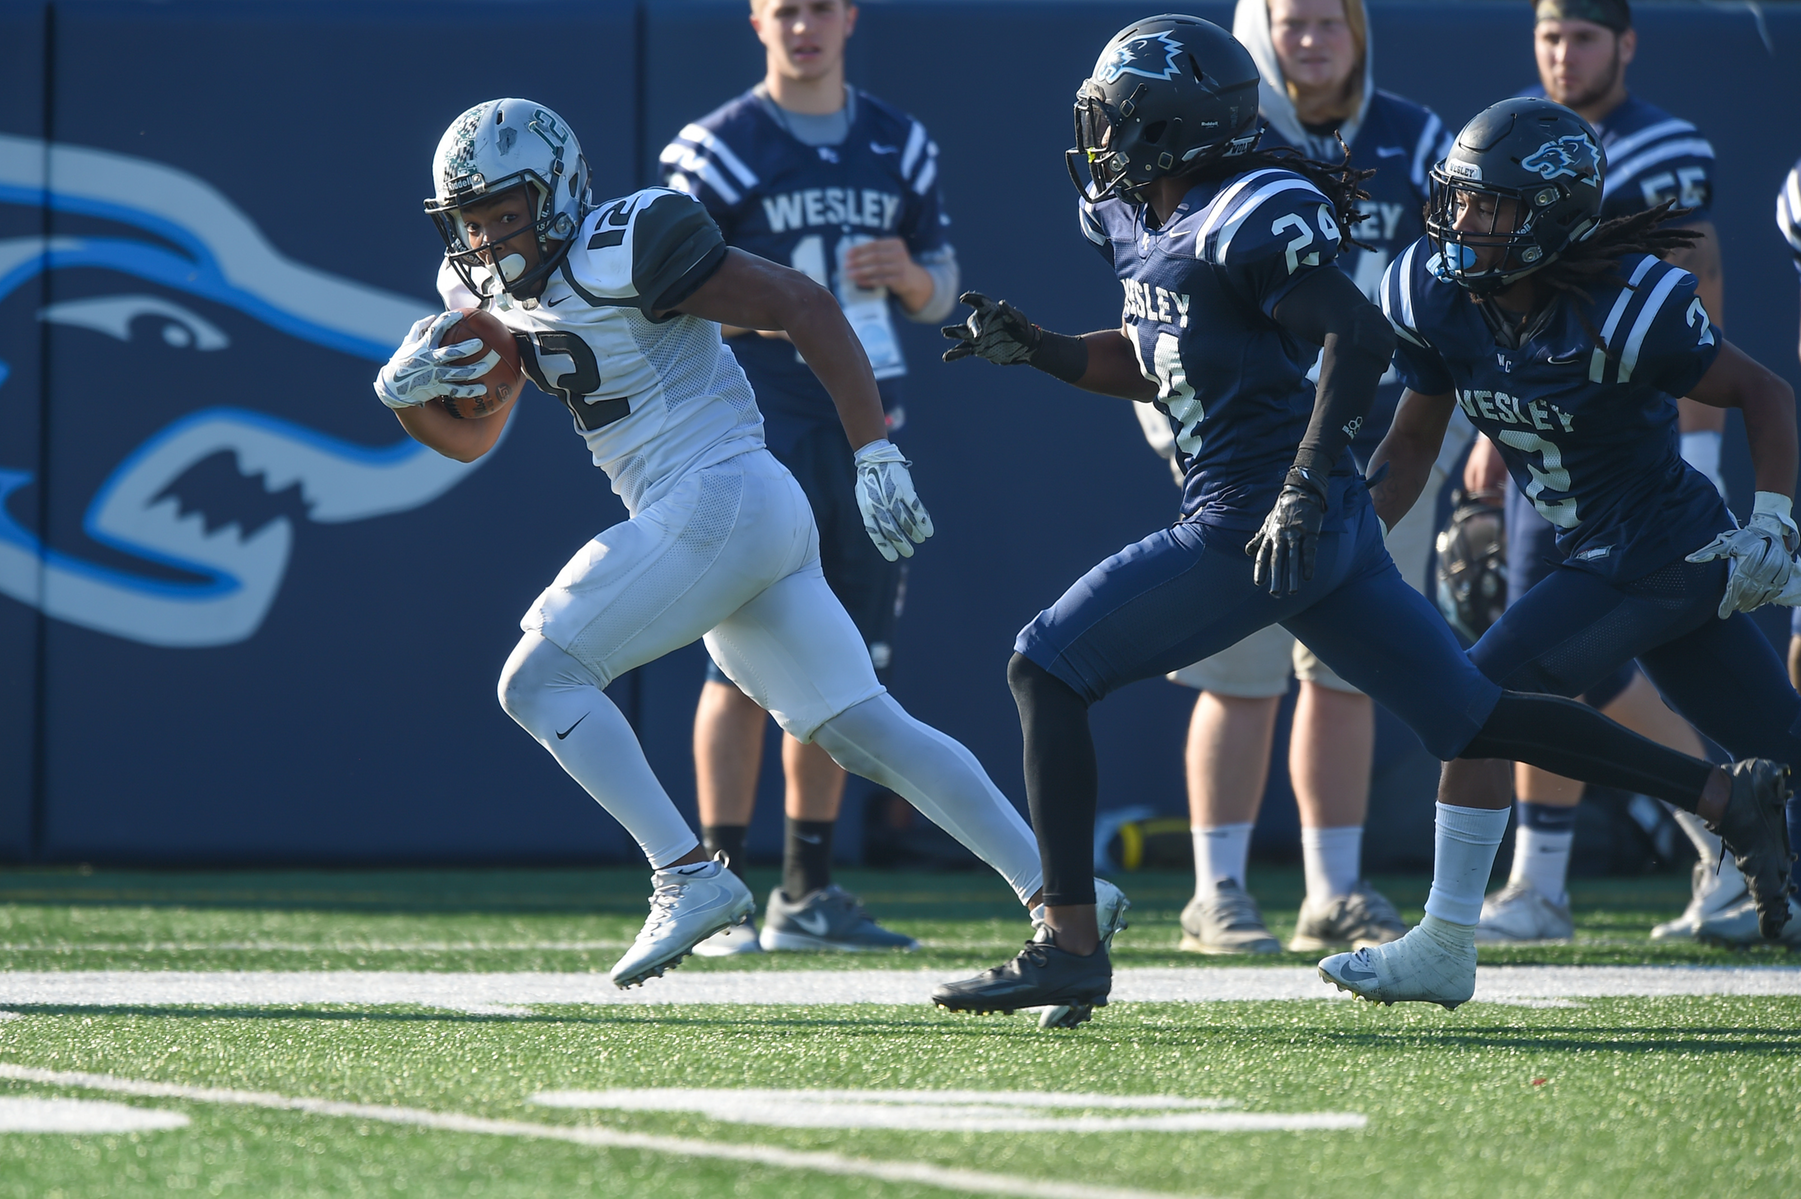 No. 18 Wesley Pulls Away From No. 20 Mustangs Late in NCAA First Round